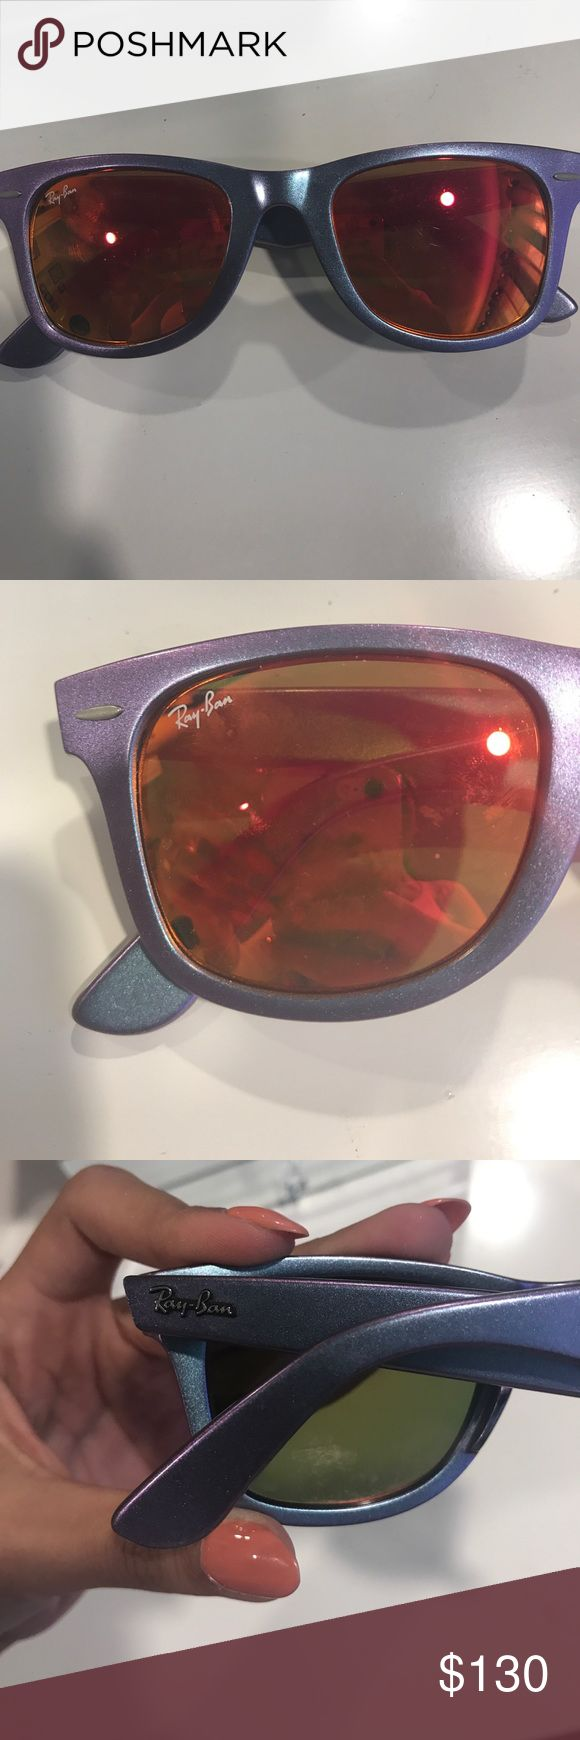 Ray Ban Wayfarer mirrored sunglasses Great condition. Minor scratches, but not noticeable Ray-Ban Accessories Sunglasses